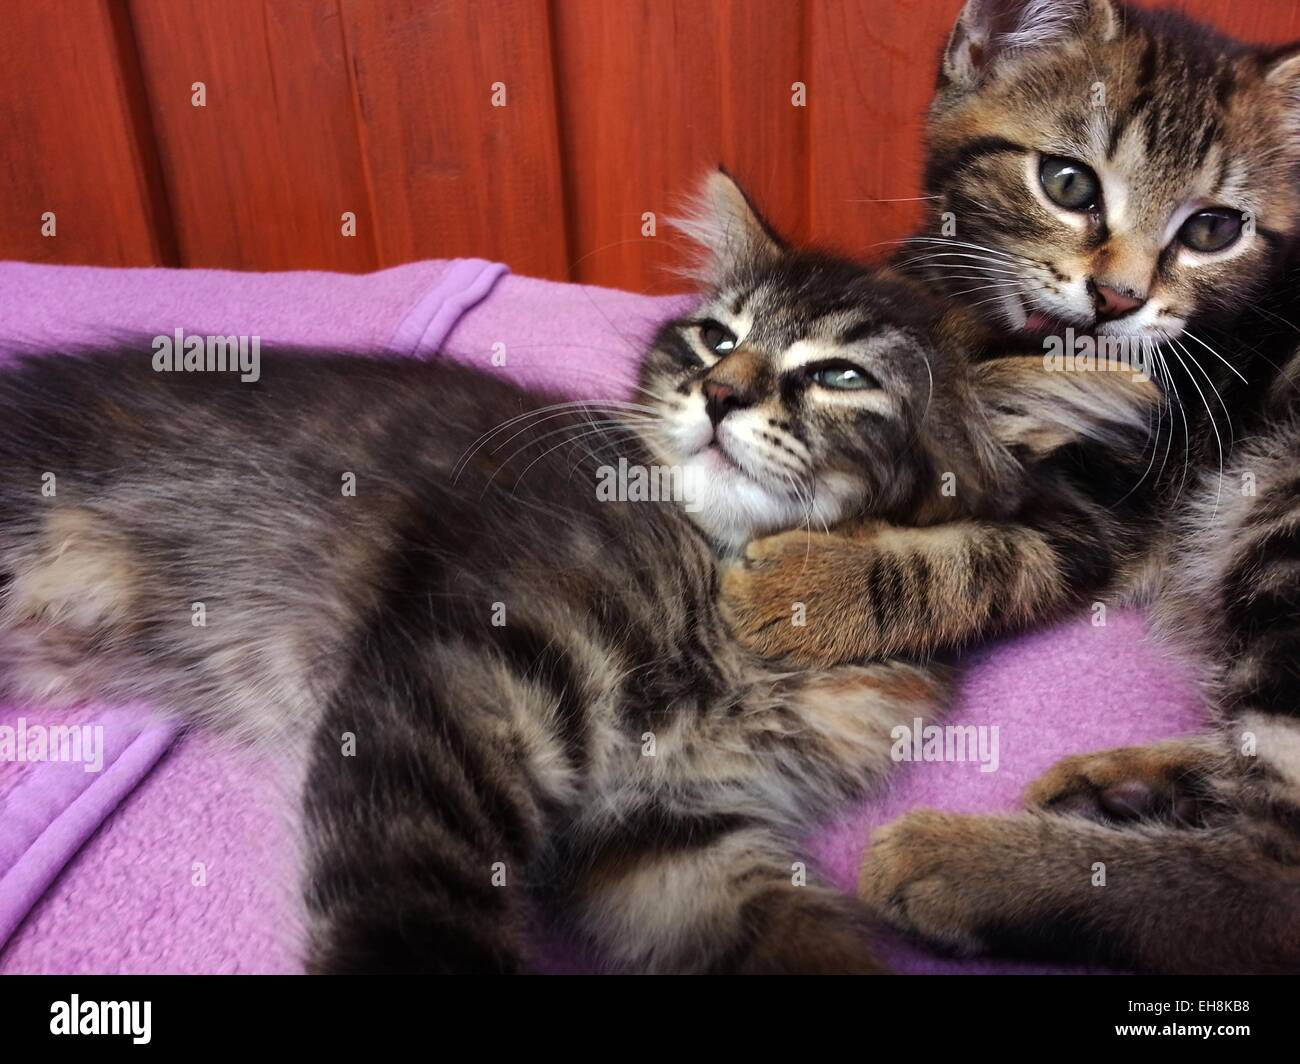 Tabby kittens embracing - Stock Image